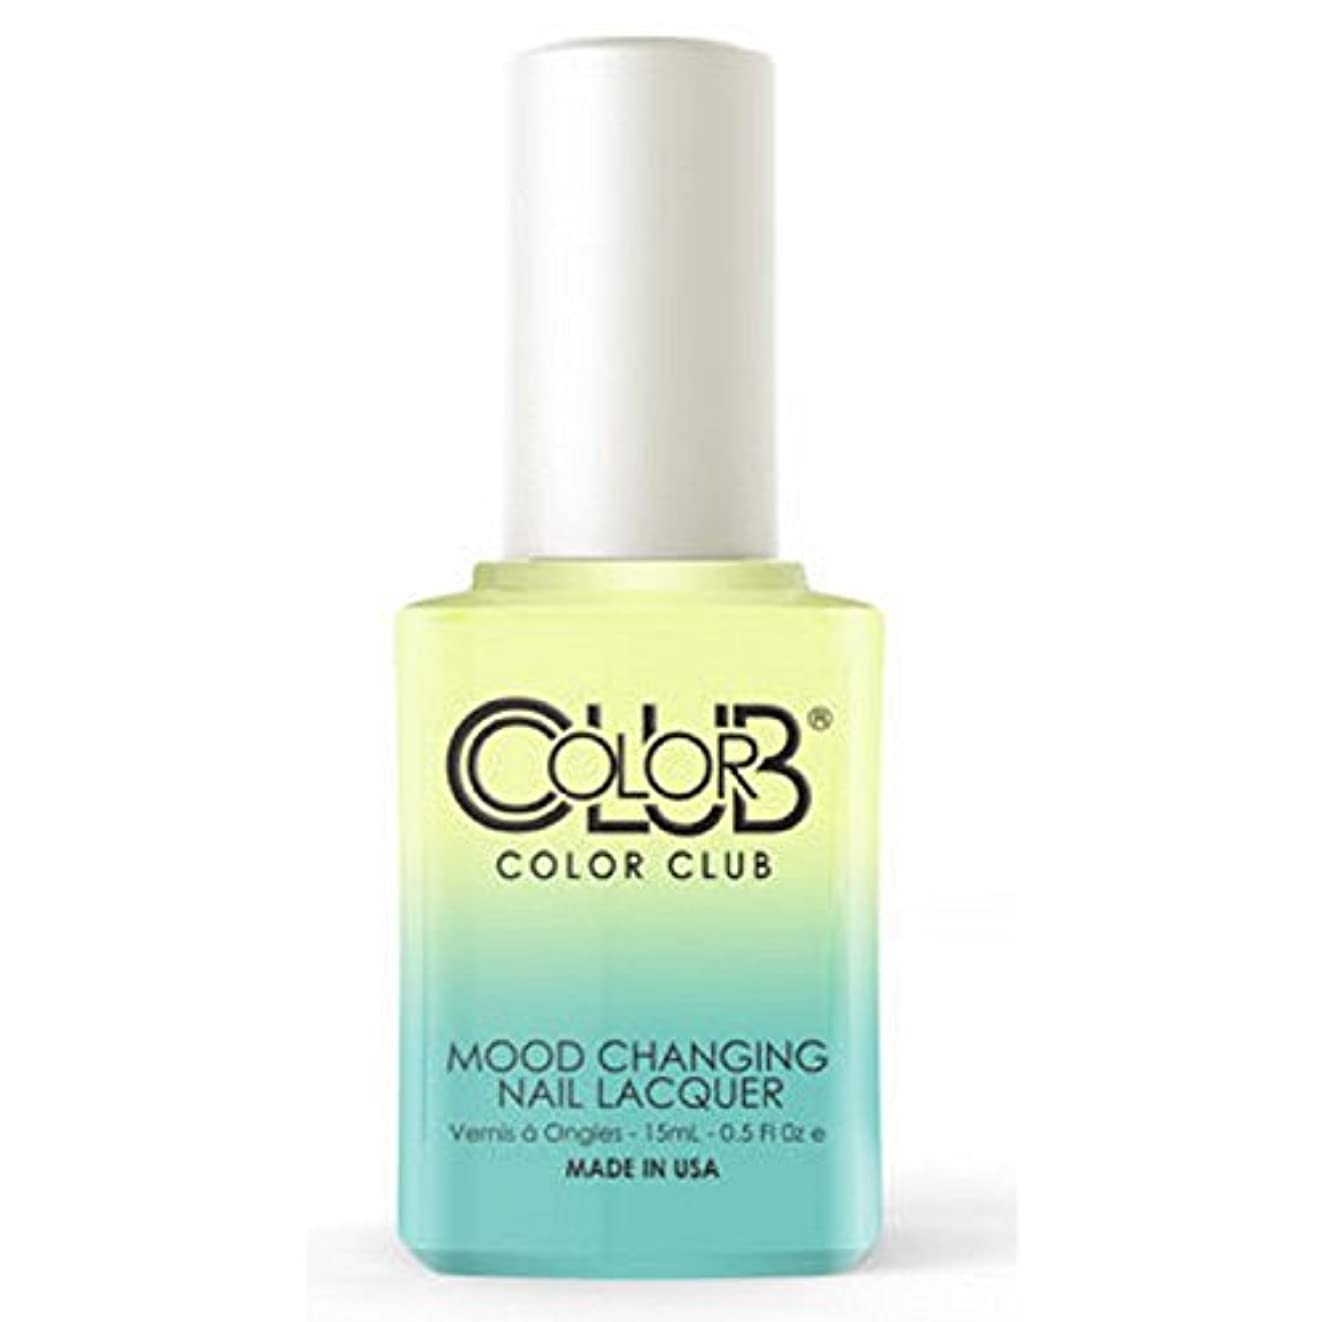 グレーもし罰Color Club Mood Changing Nail Lacquer - Shine Theory - 15 mL / 0.5 fl oz